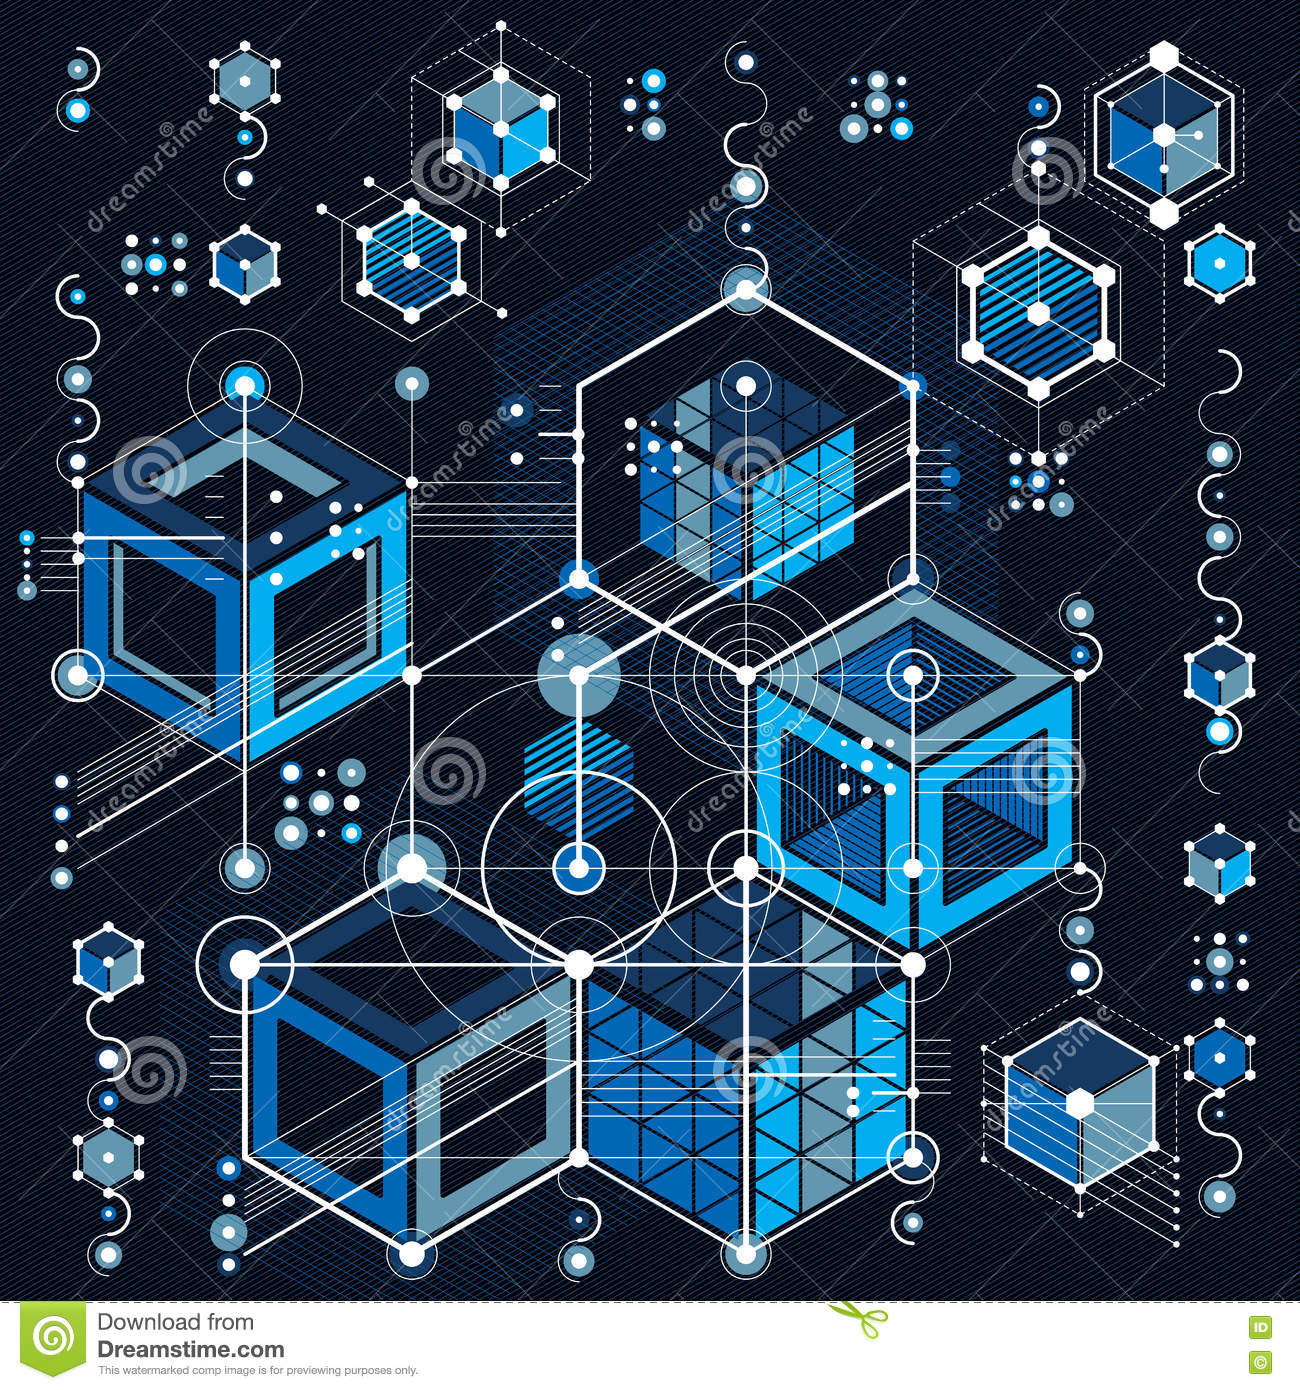 Architectural blueprint digital background with differen stock download architectural blueprint digital background with differen stock illustration illustration of hexagon illustration malvernweather Images